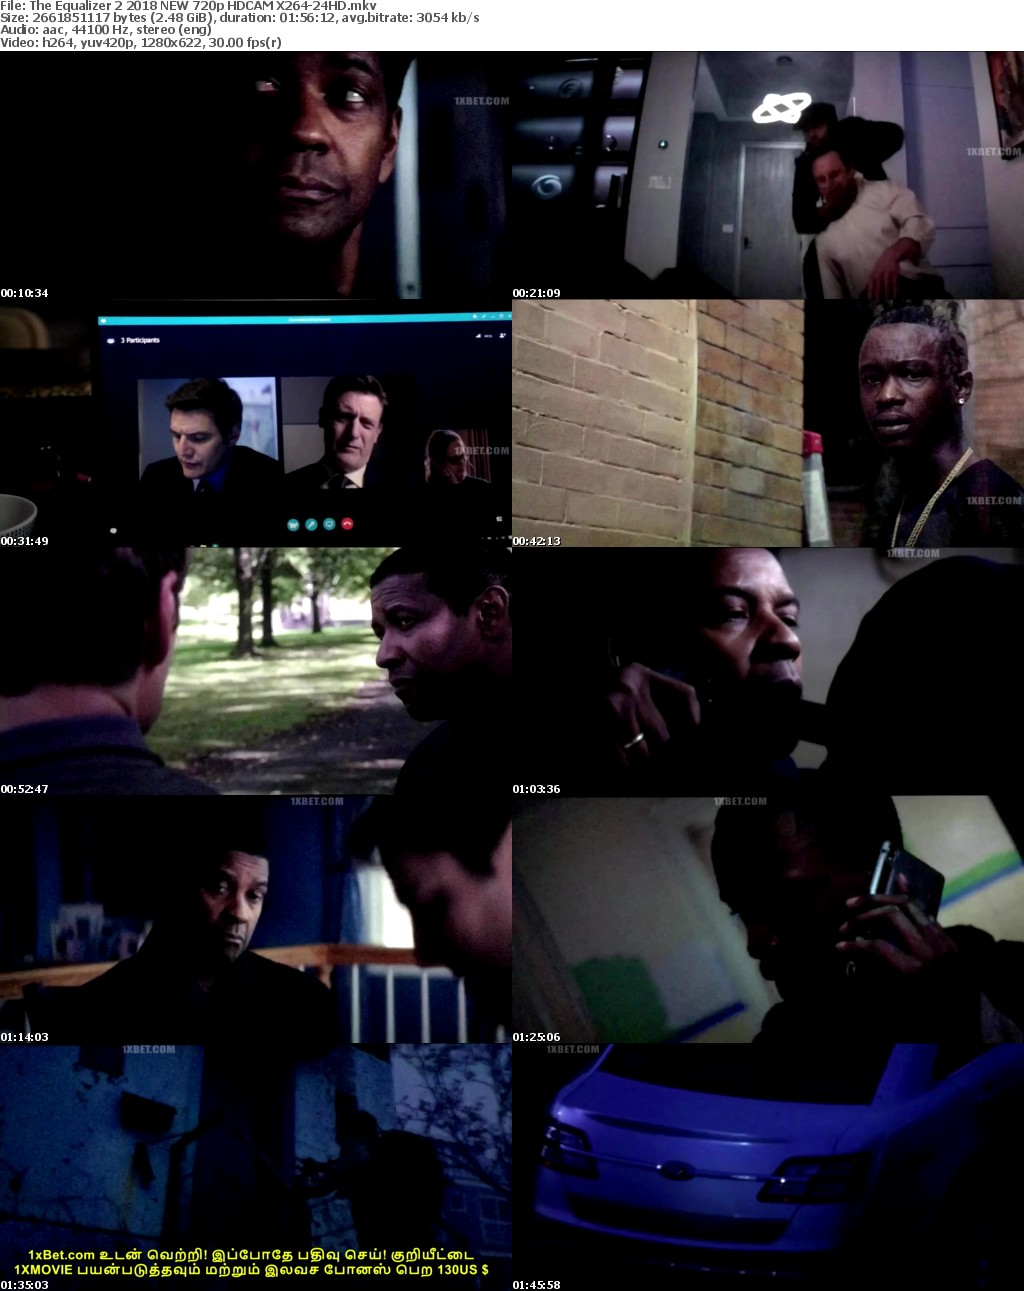 The Equalizer 2 (2018) NEW 720p HDCAM X264-24HD